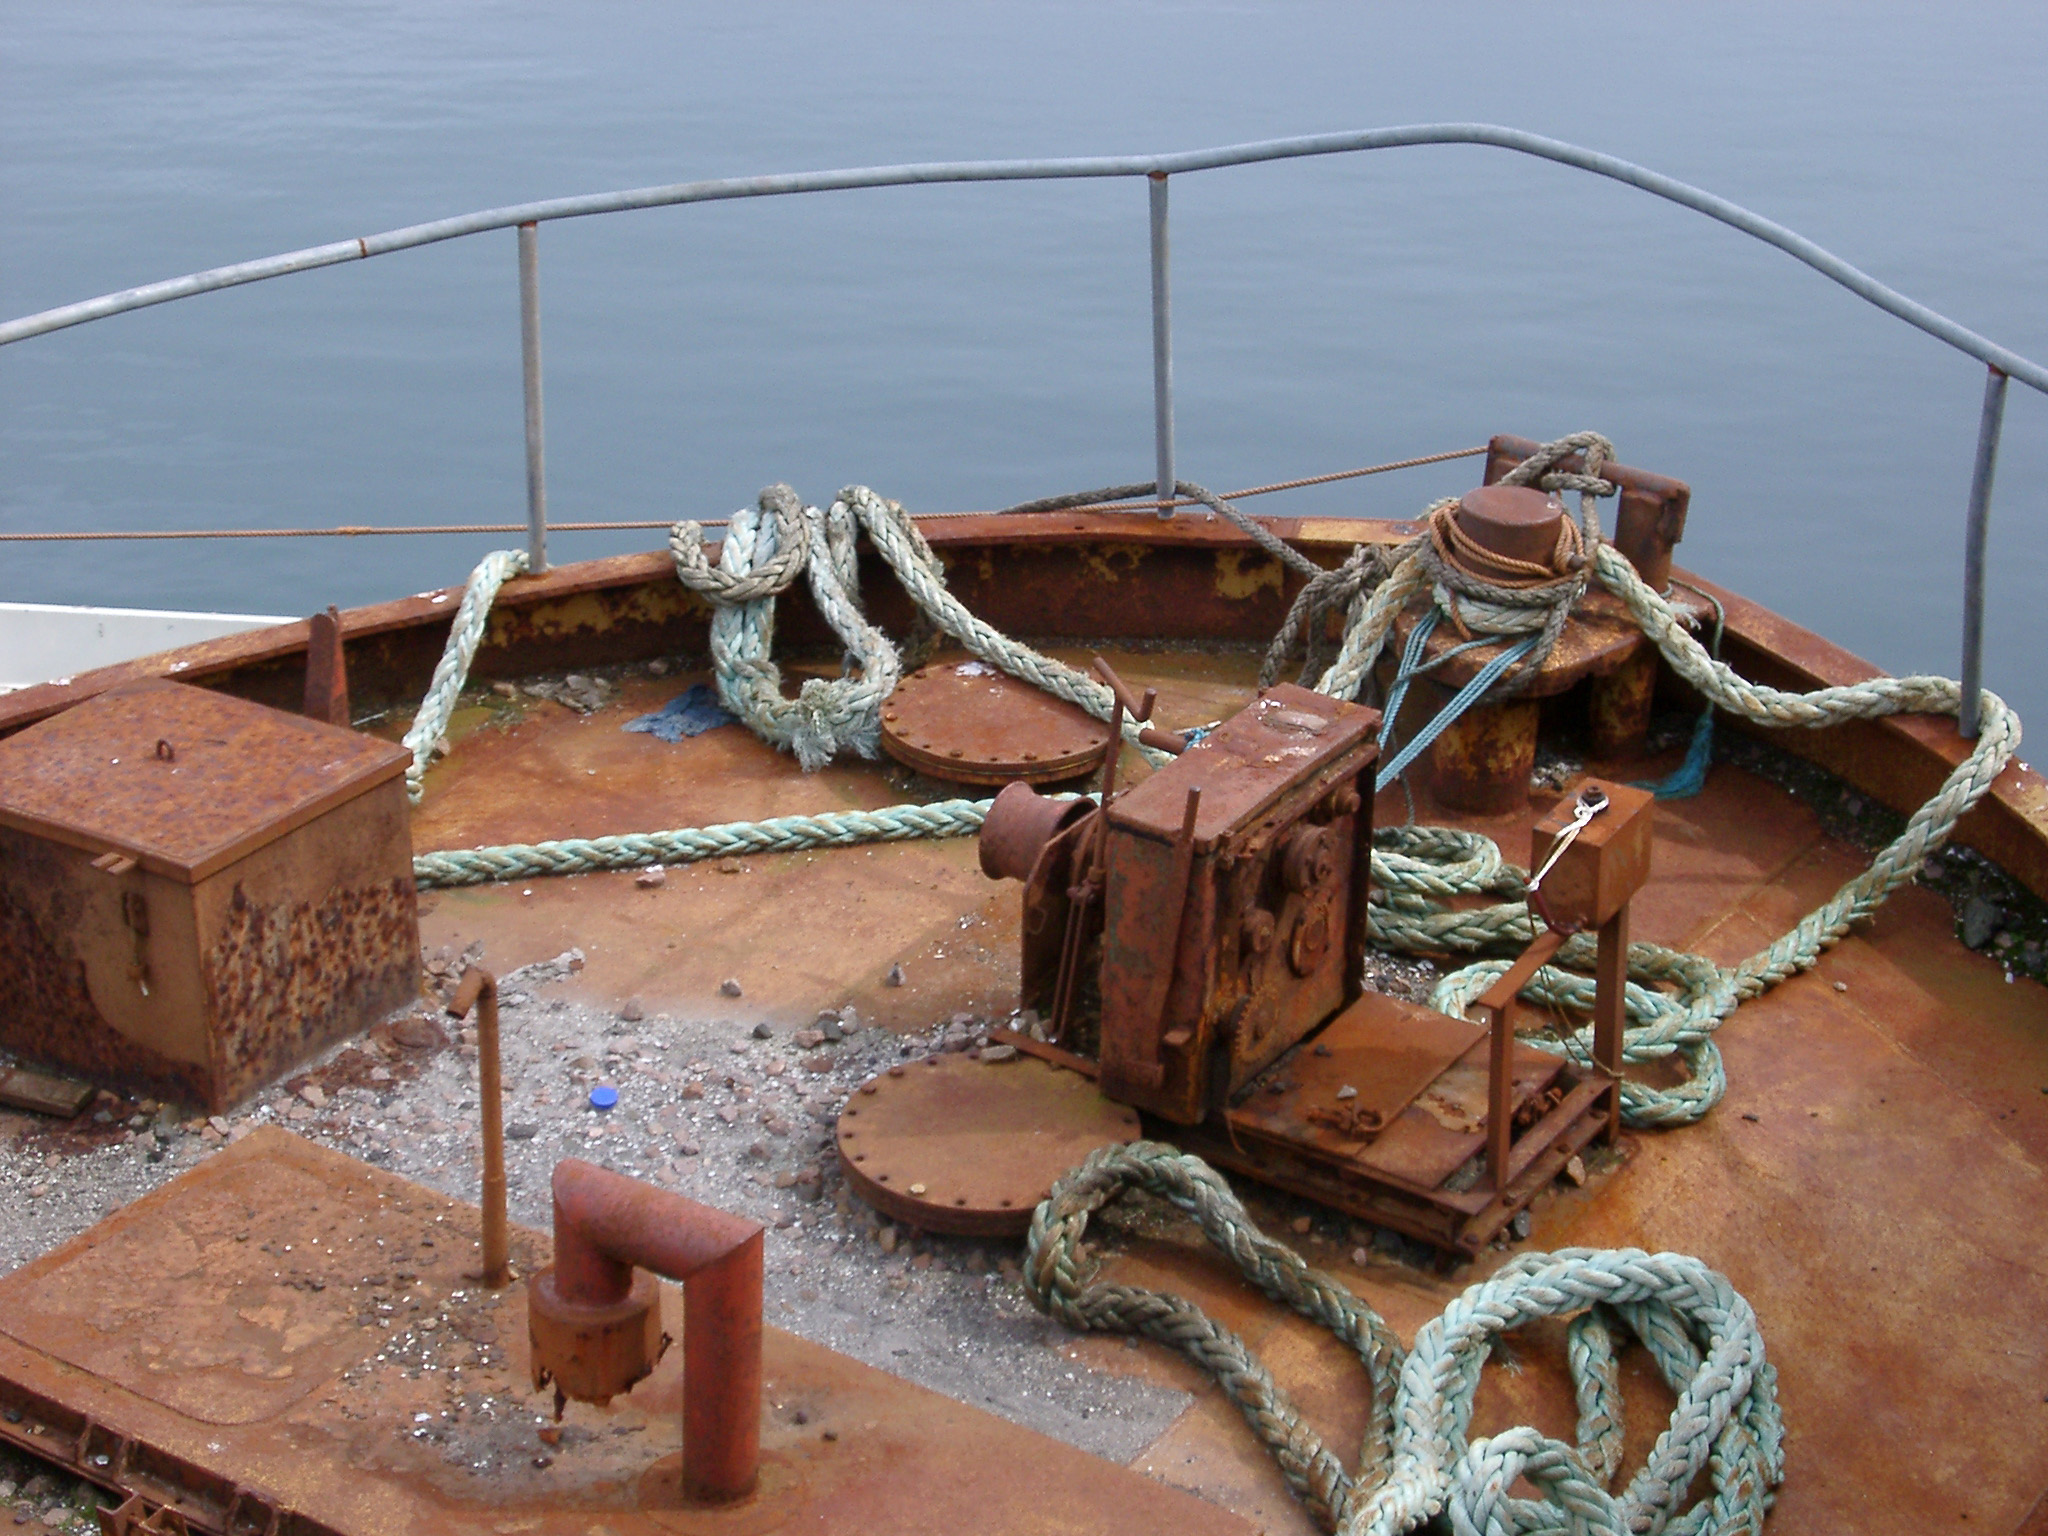 Rusty forecastle of a boat with a safety railing around the bow and old ropes and equipment on deck